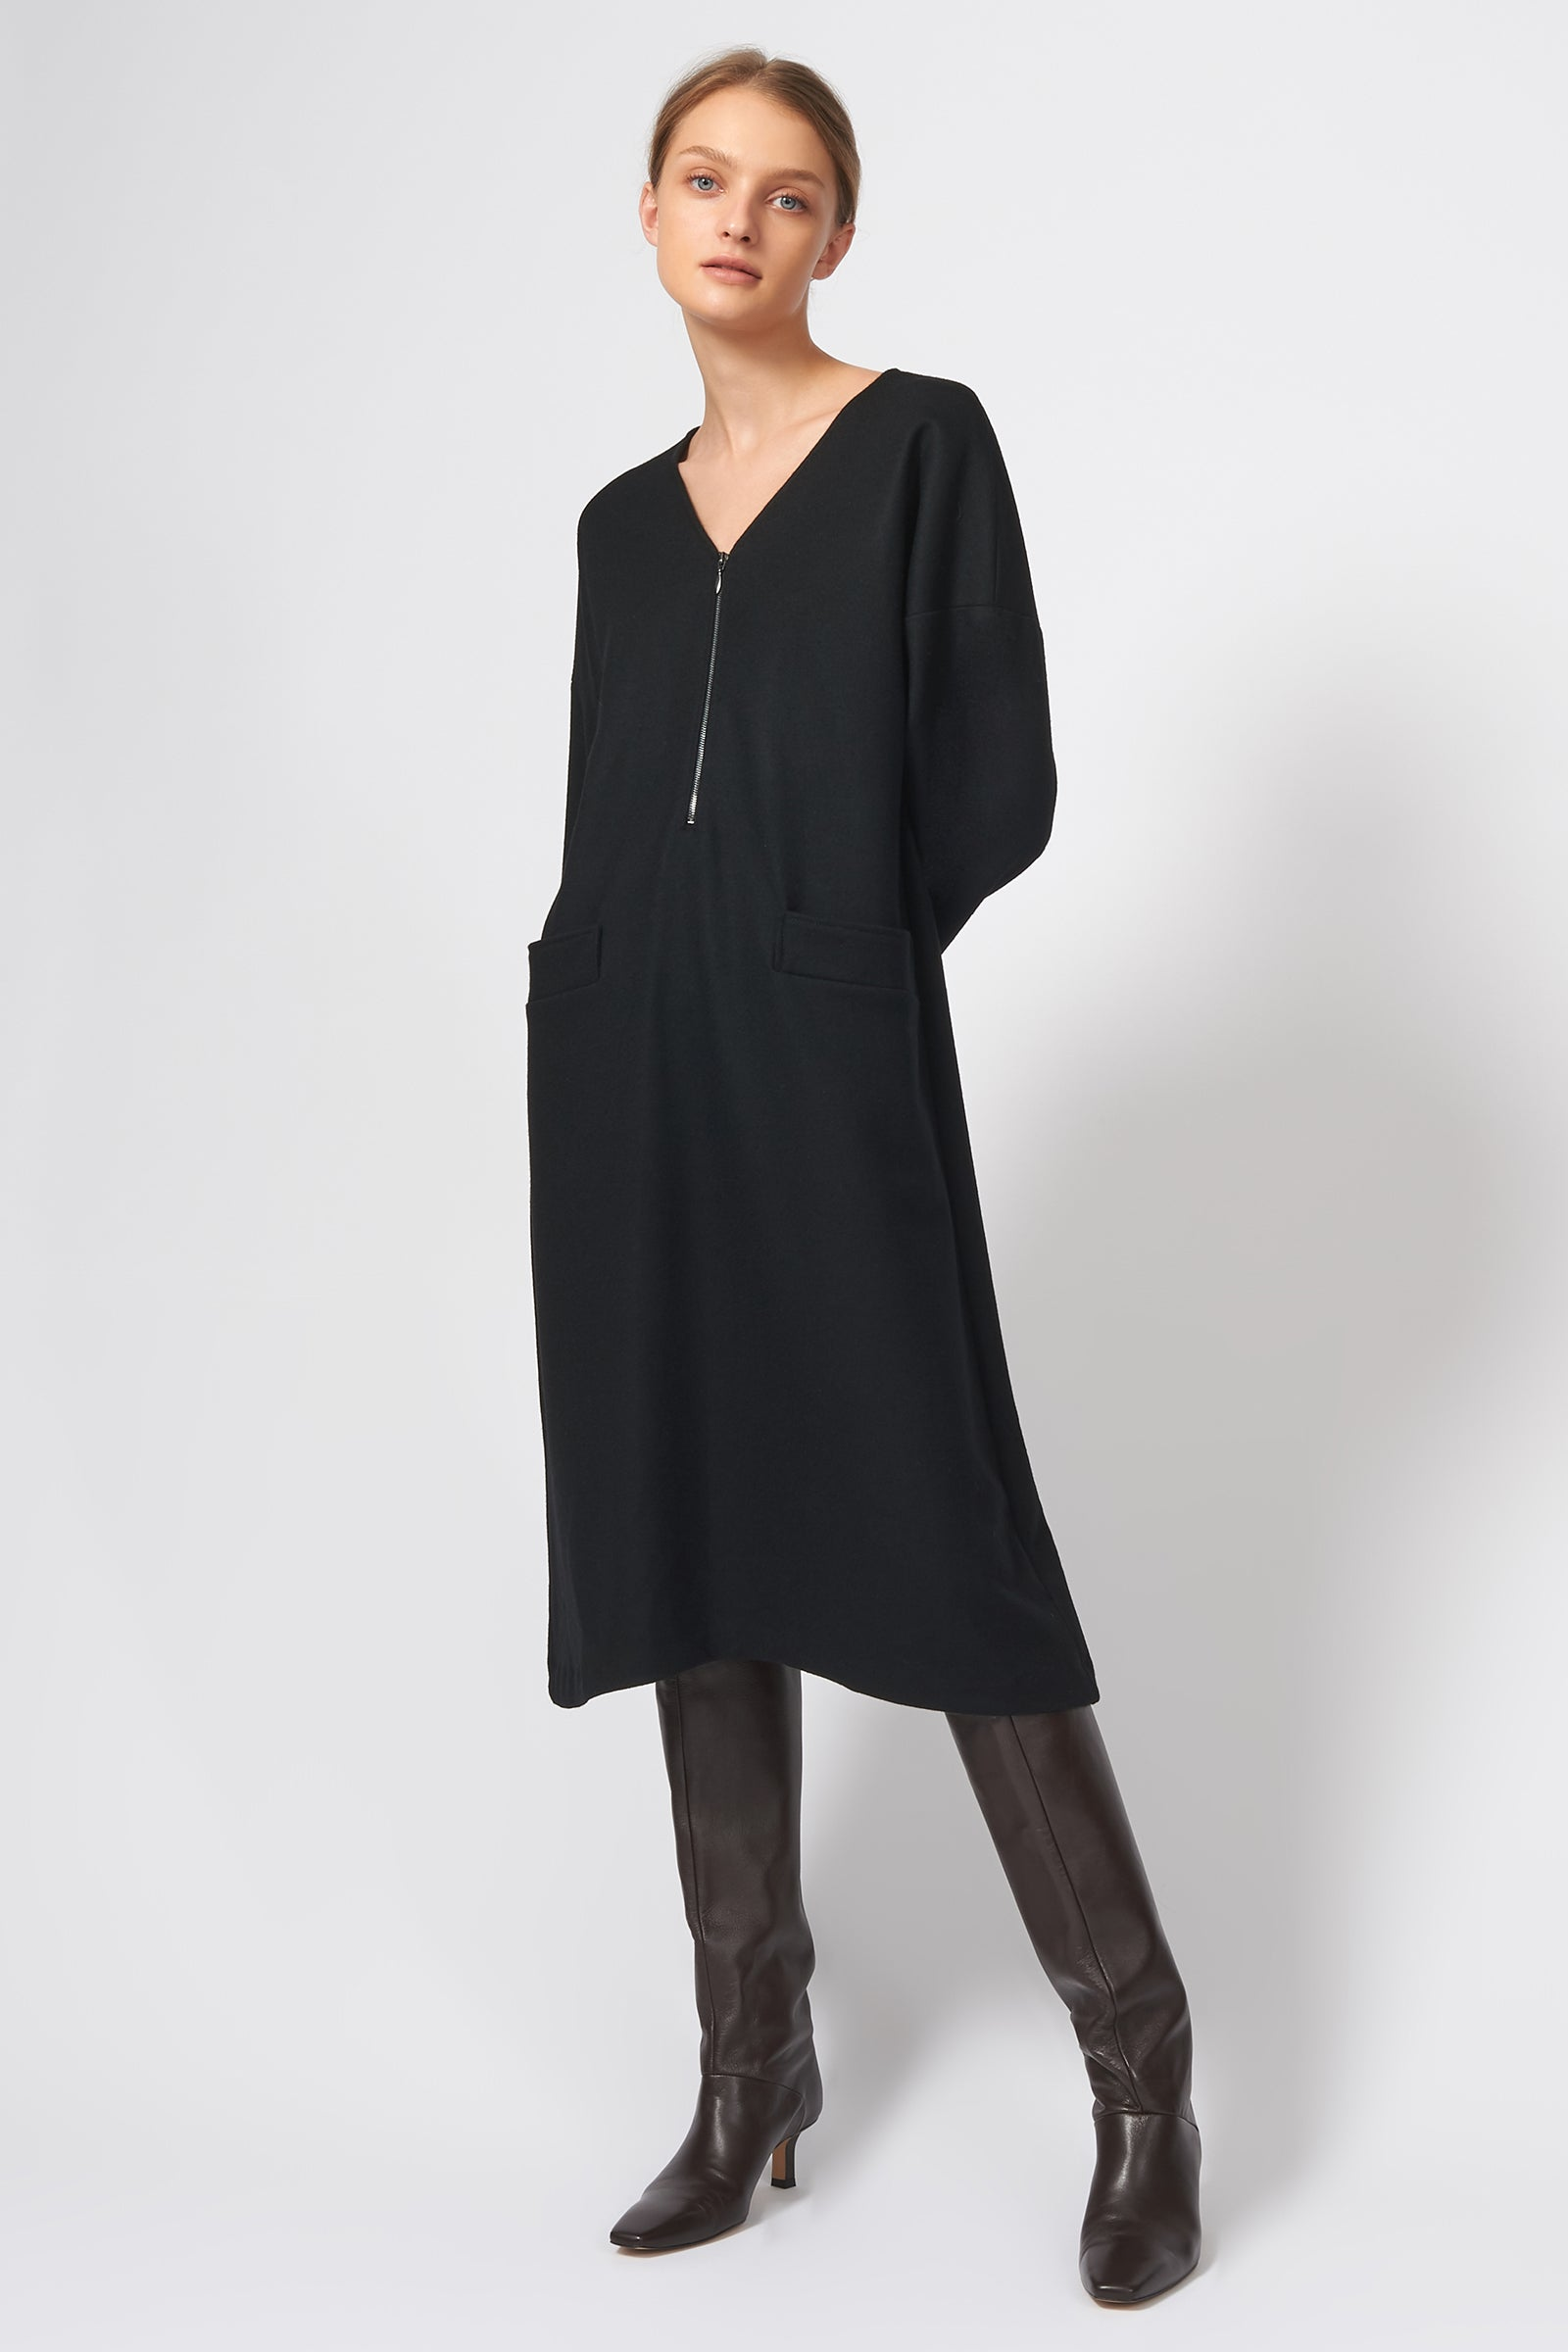 Kal Rieman LS V Neck Day Dress in Black Felted Jersey on Model Front Full View